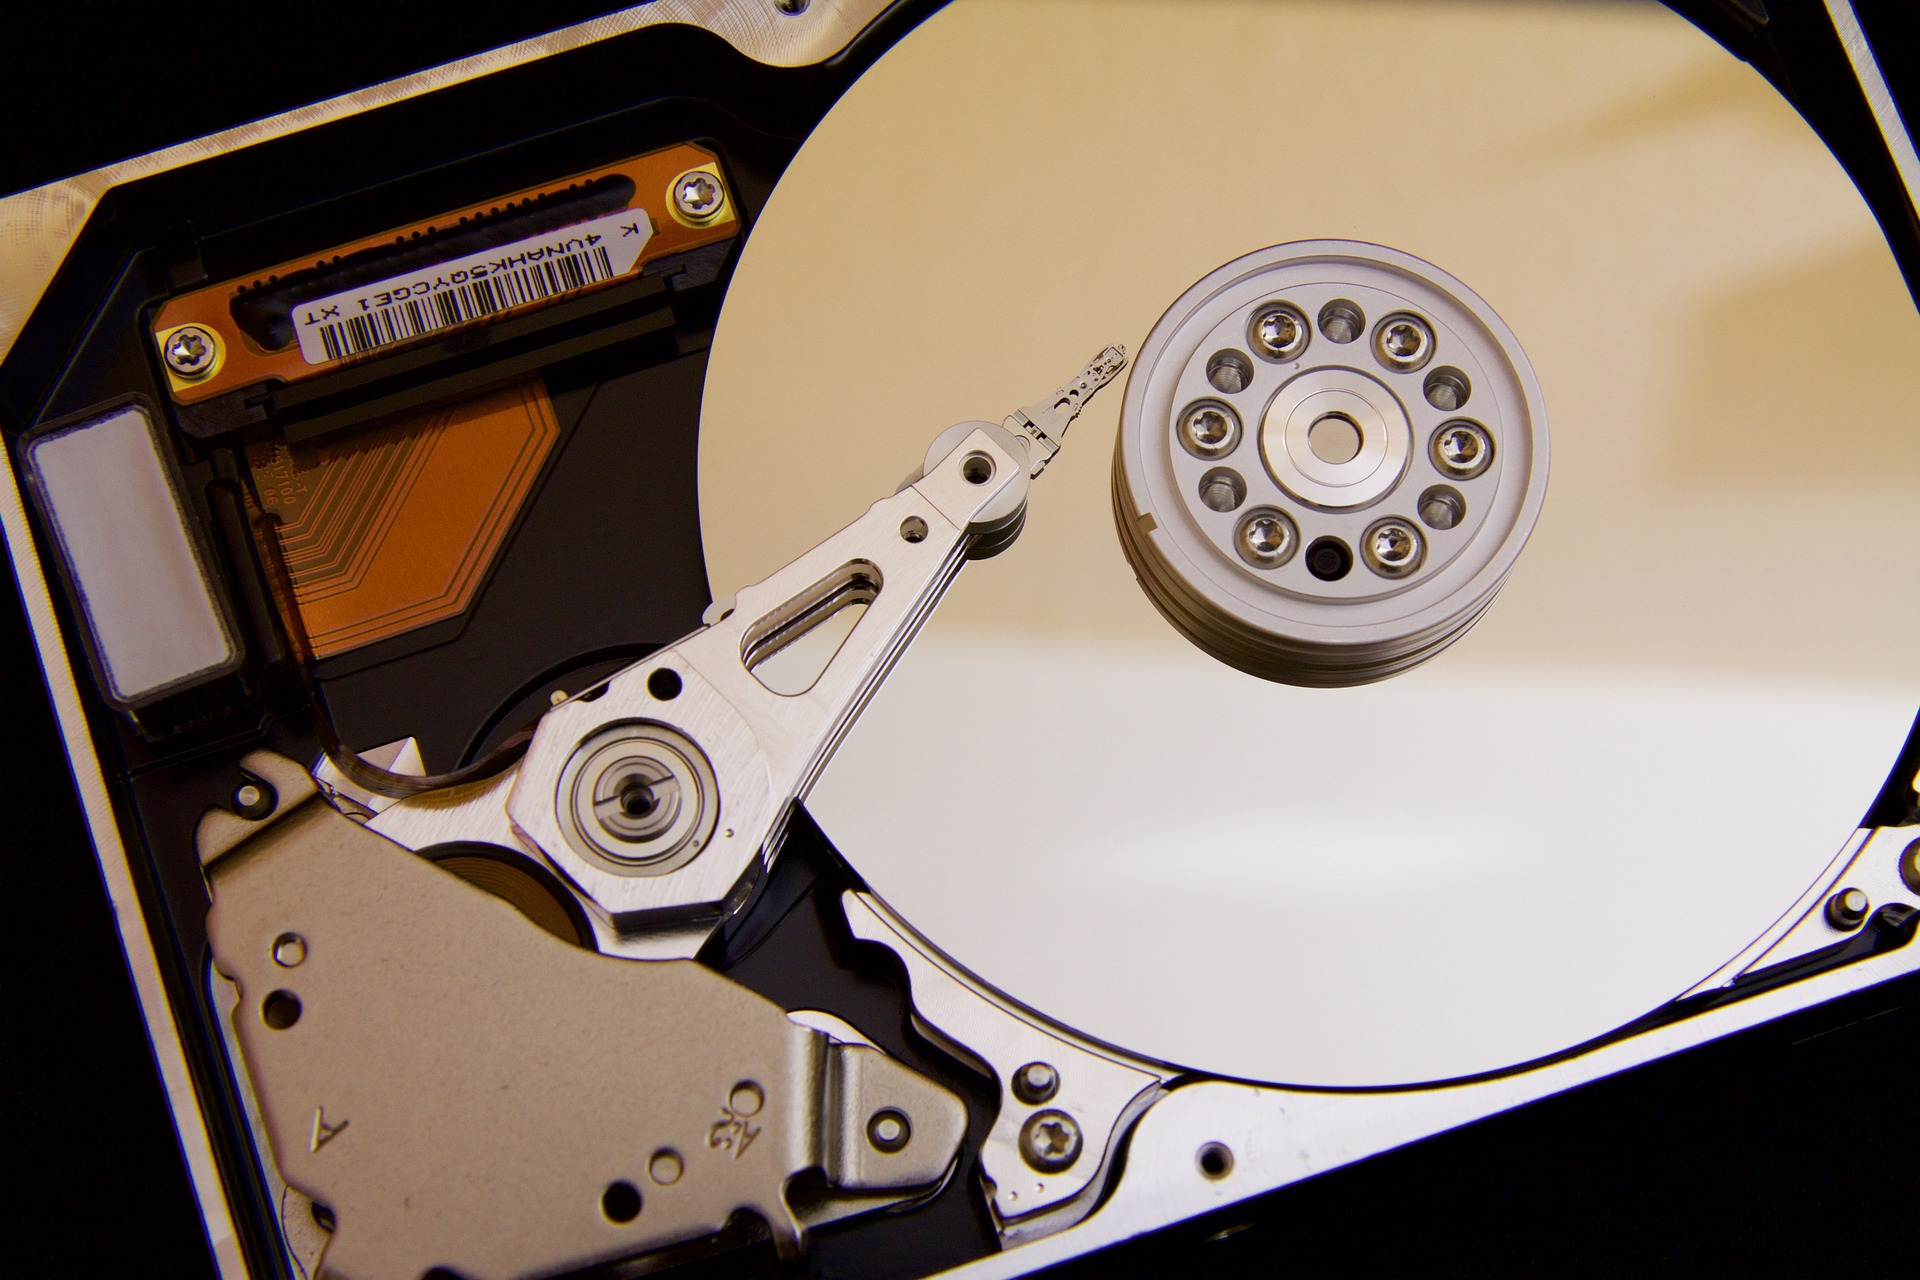 how to clone a hard drive